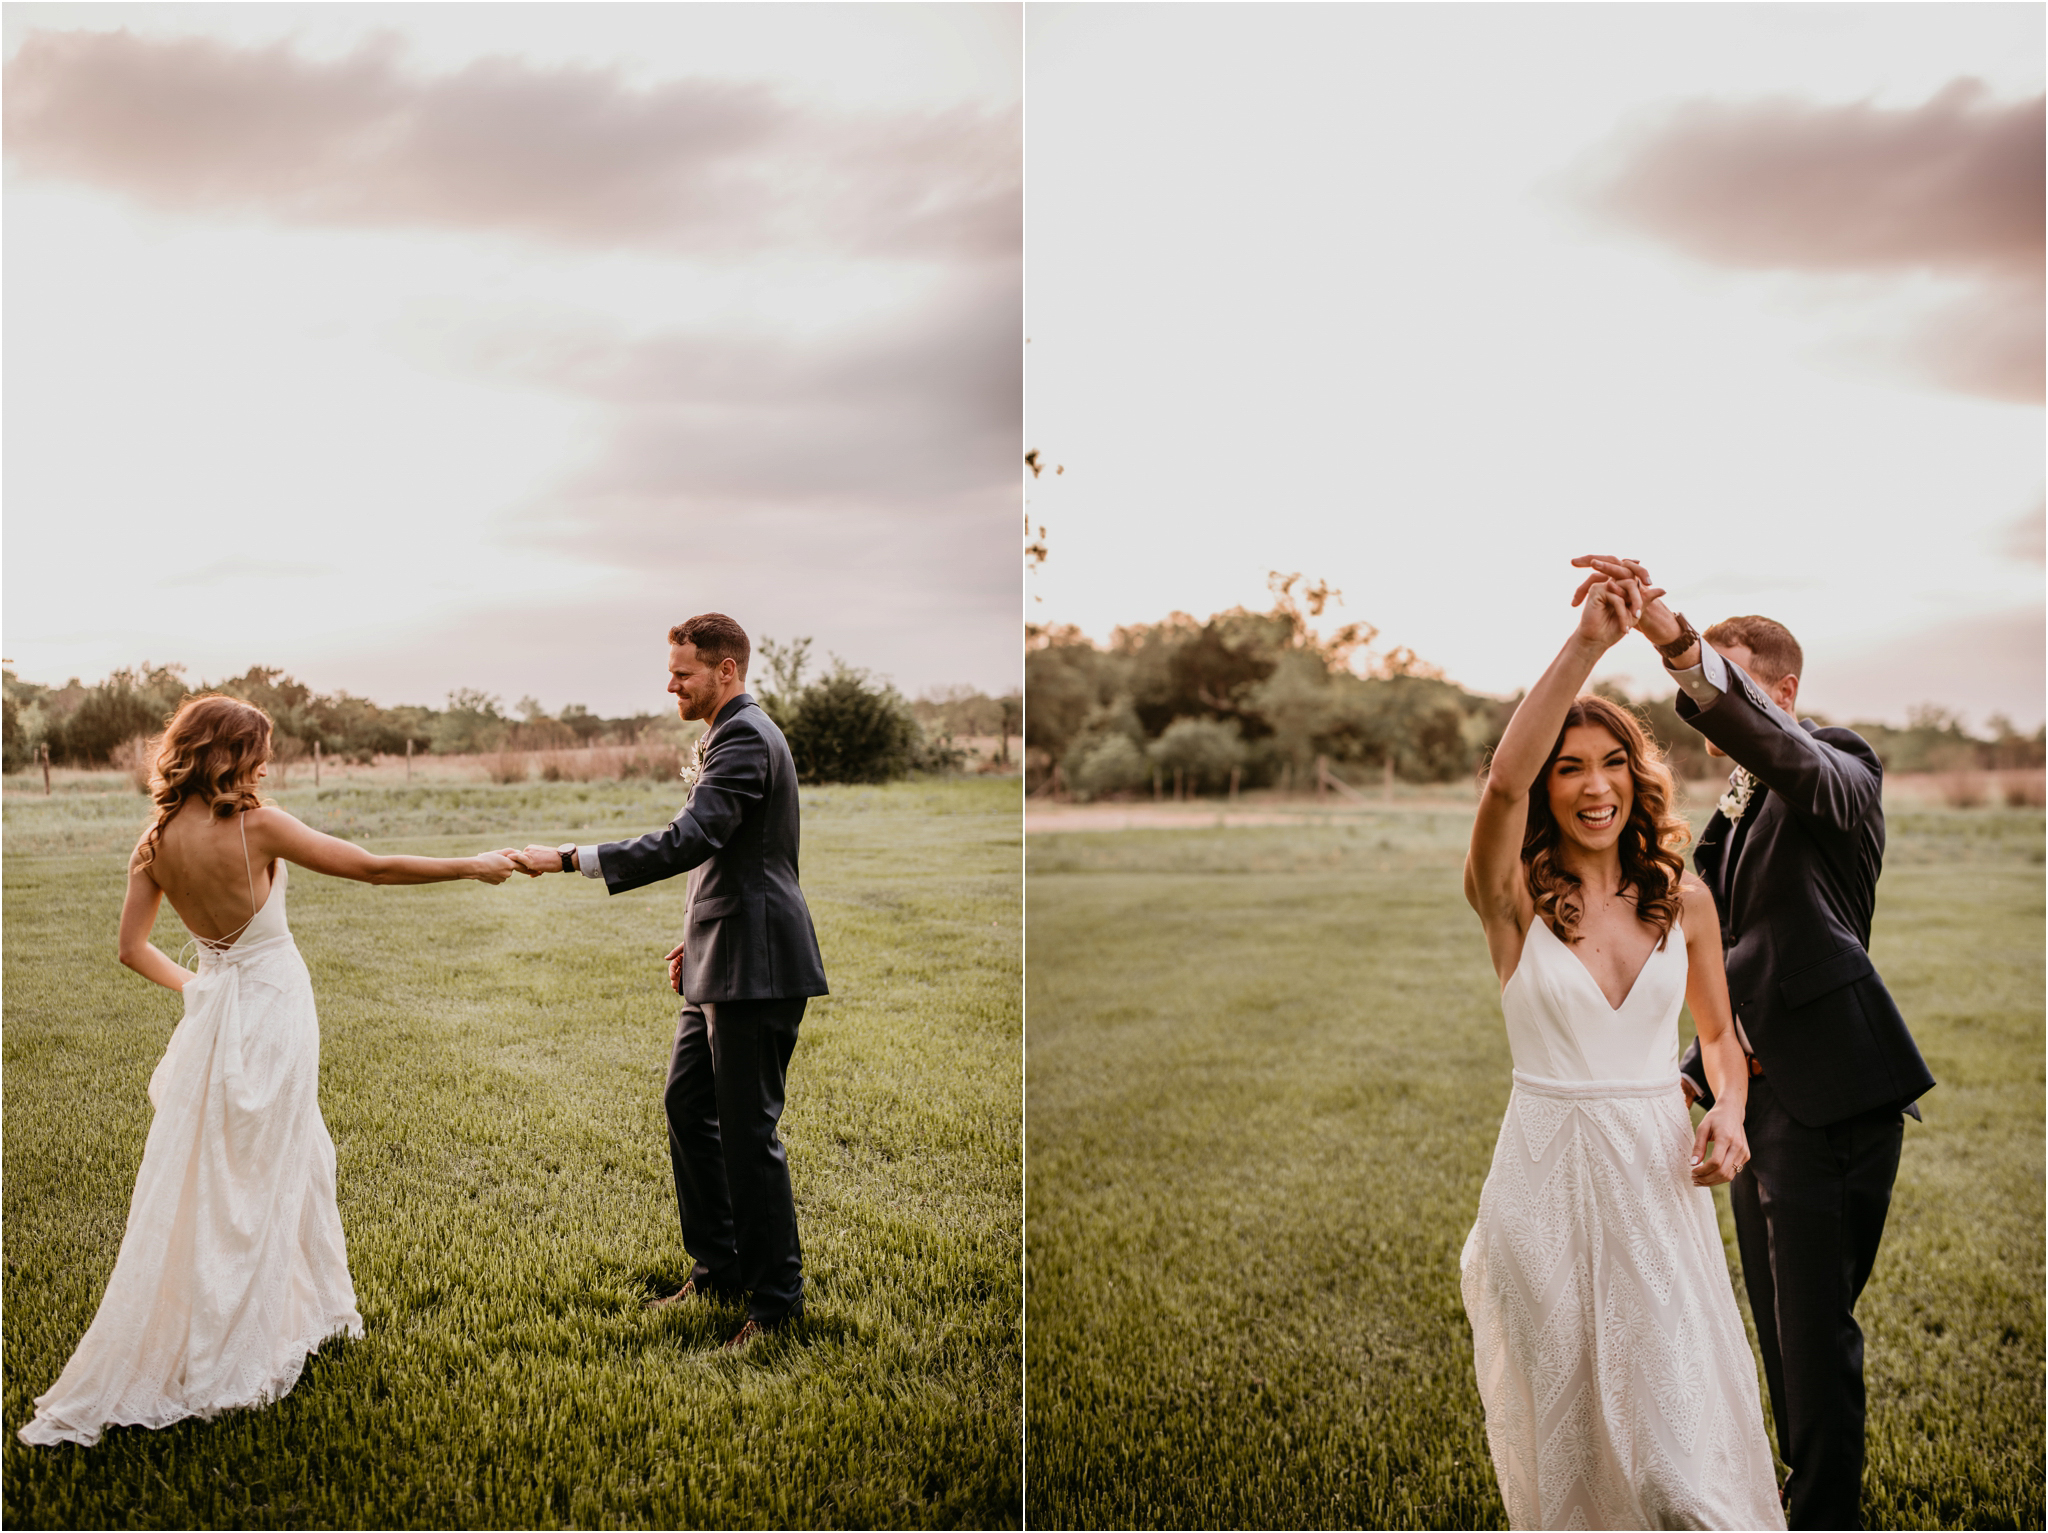 jillian-and-scott-pecan-springs-ranch-texas-and-washington-wedding-photographer-105.jpg